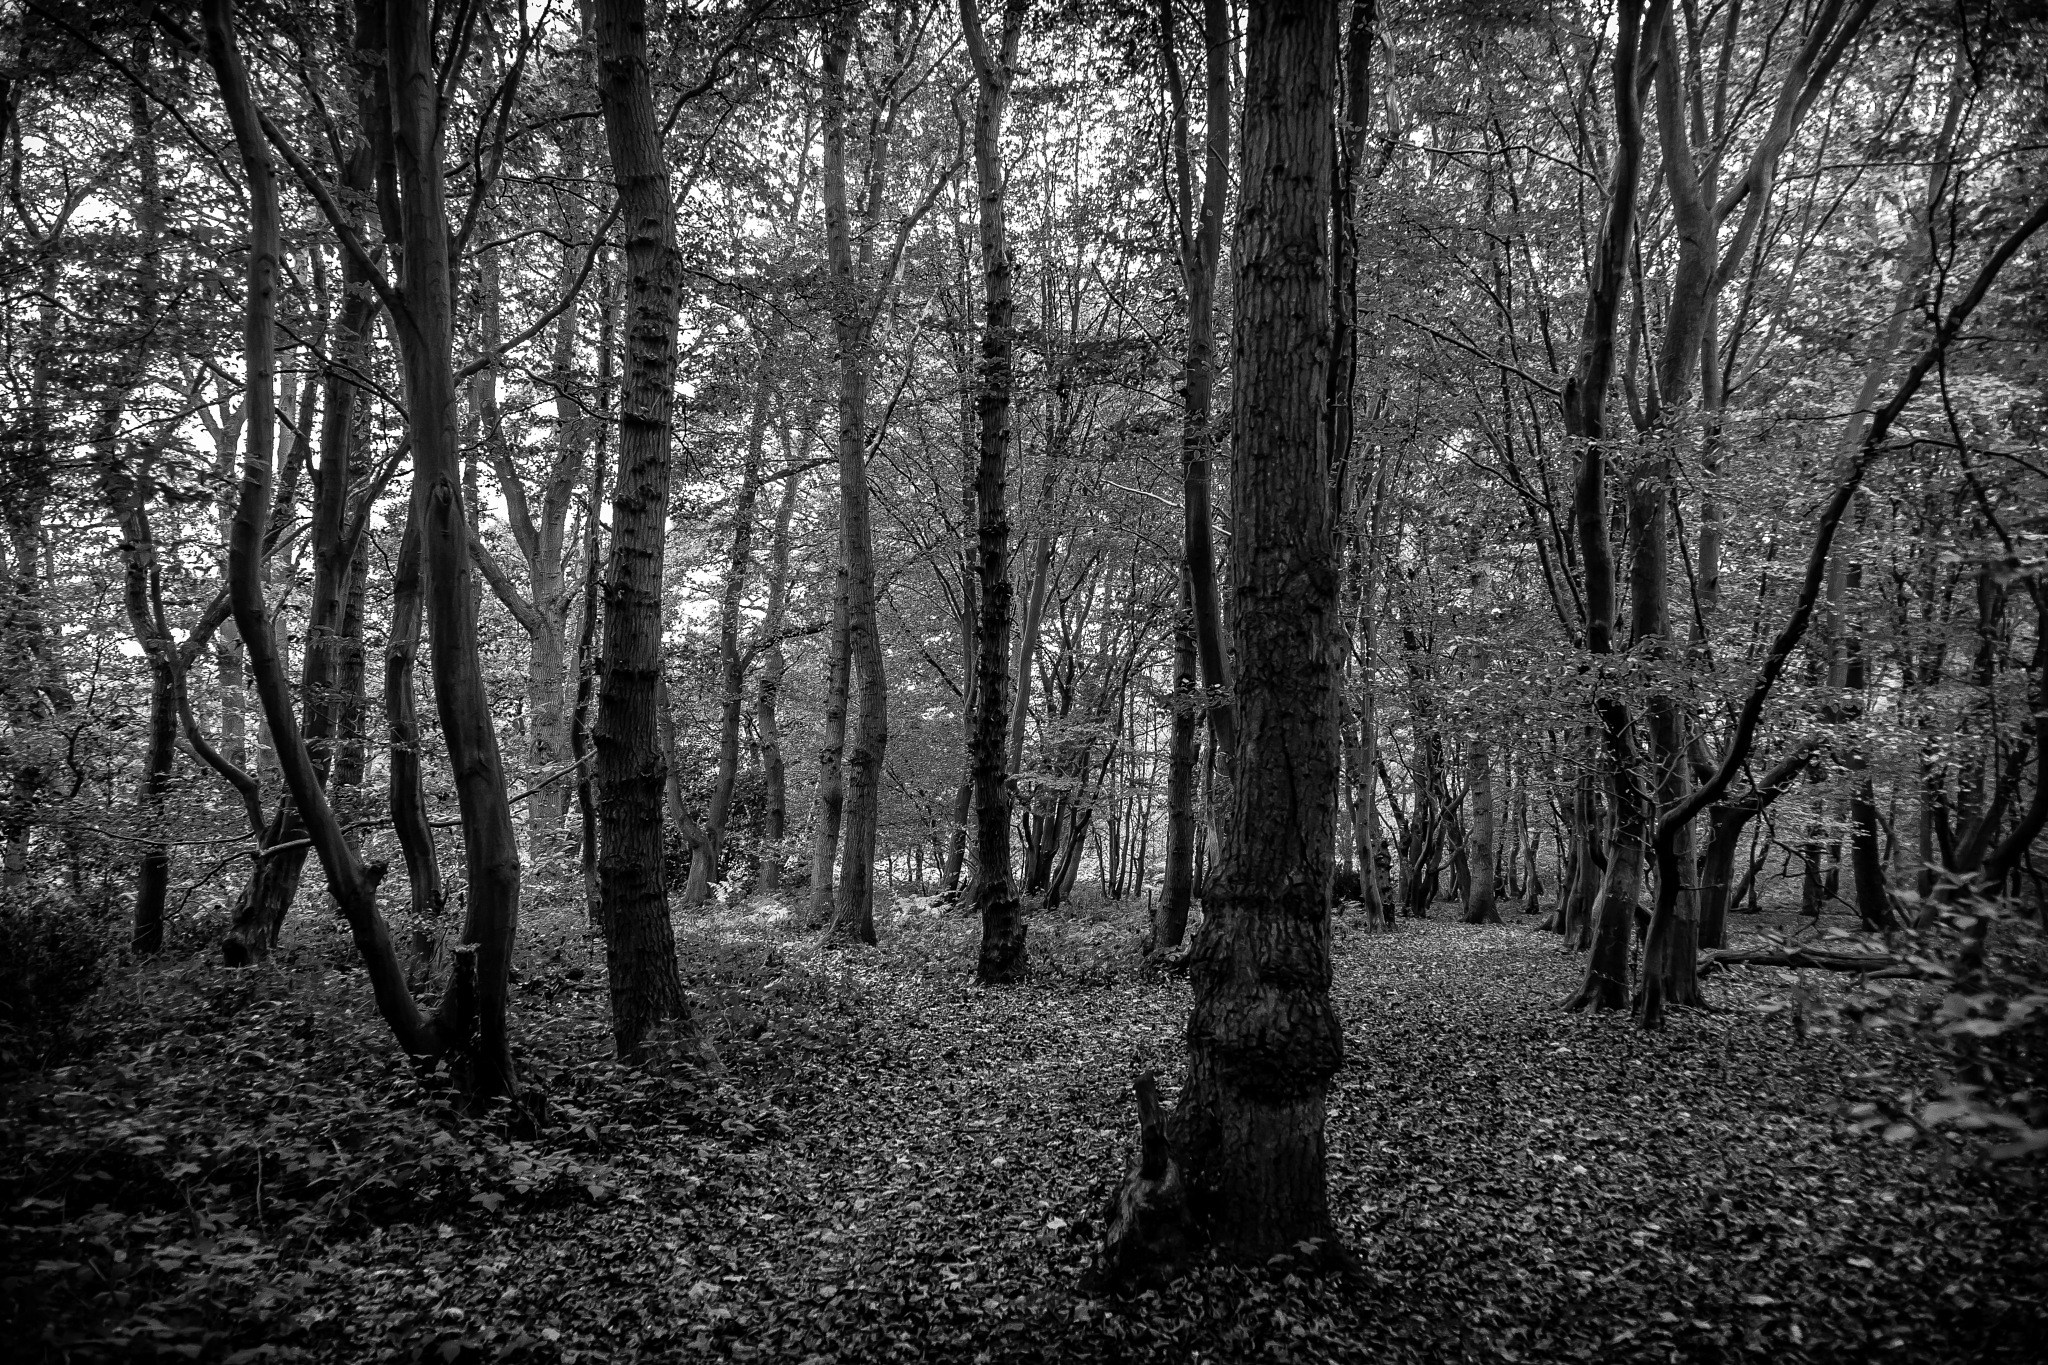 Autumn Woods 2 by DRJonsey